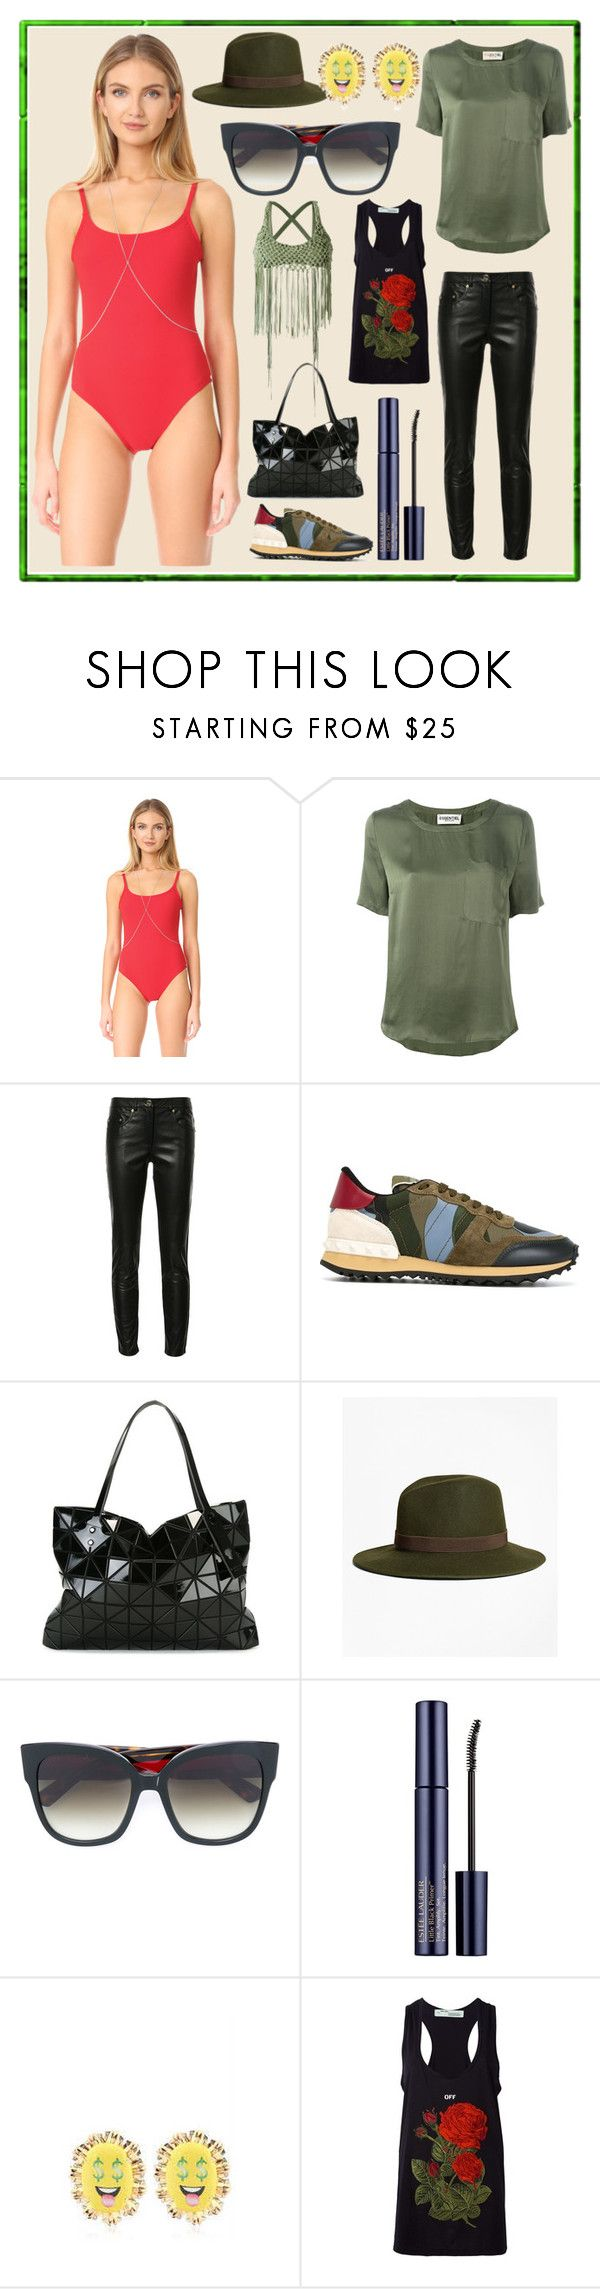 """""""Variety Of Style"""" by cate-jennifer ❤ liked on Polyvore featuring Chan Luu, Essentiel, Boutique Moschino, Valentino, Bao Bao by Issey Miyake, Brooks Brothers, Gucci, Bijoux de Famille, Off-White and Amir Slama"""